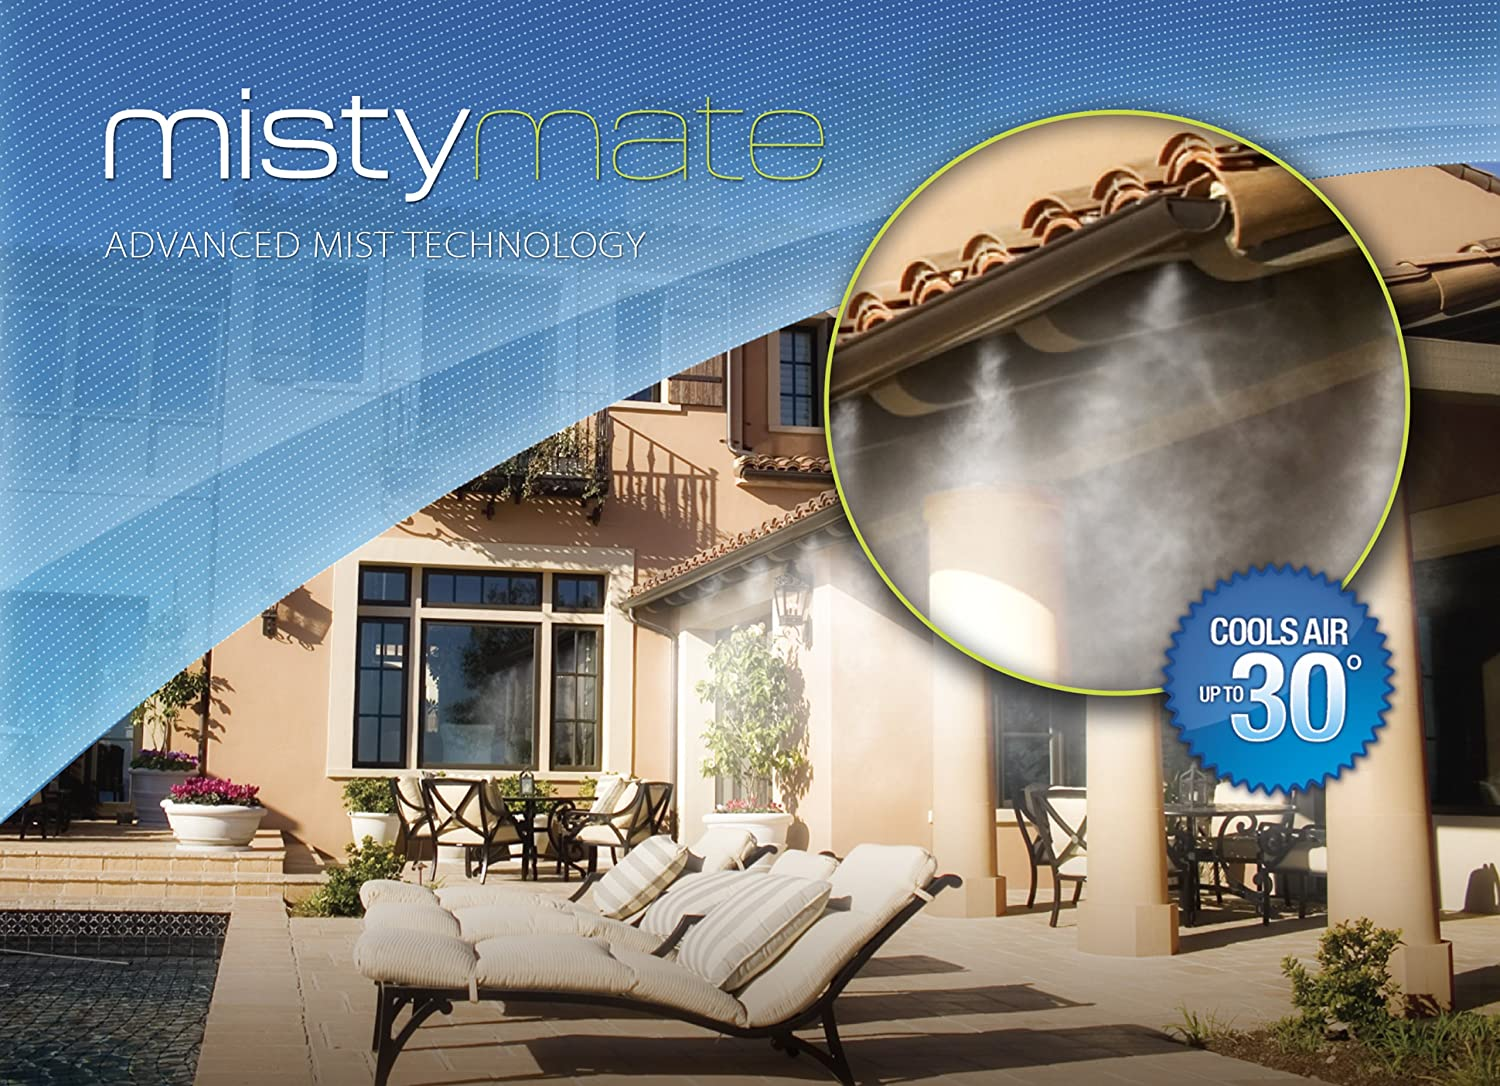 pinterest patios a ma need arizona patio have your pool by cool no be pin when system on misting you to mist